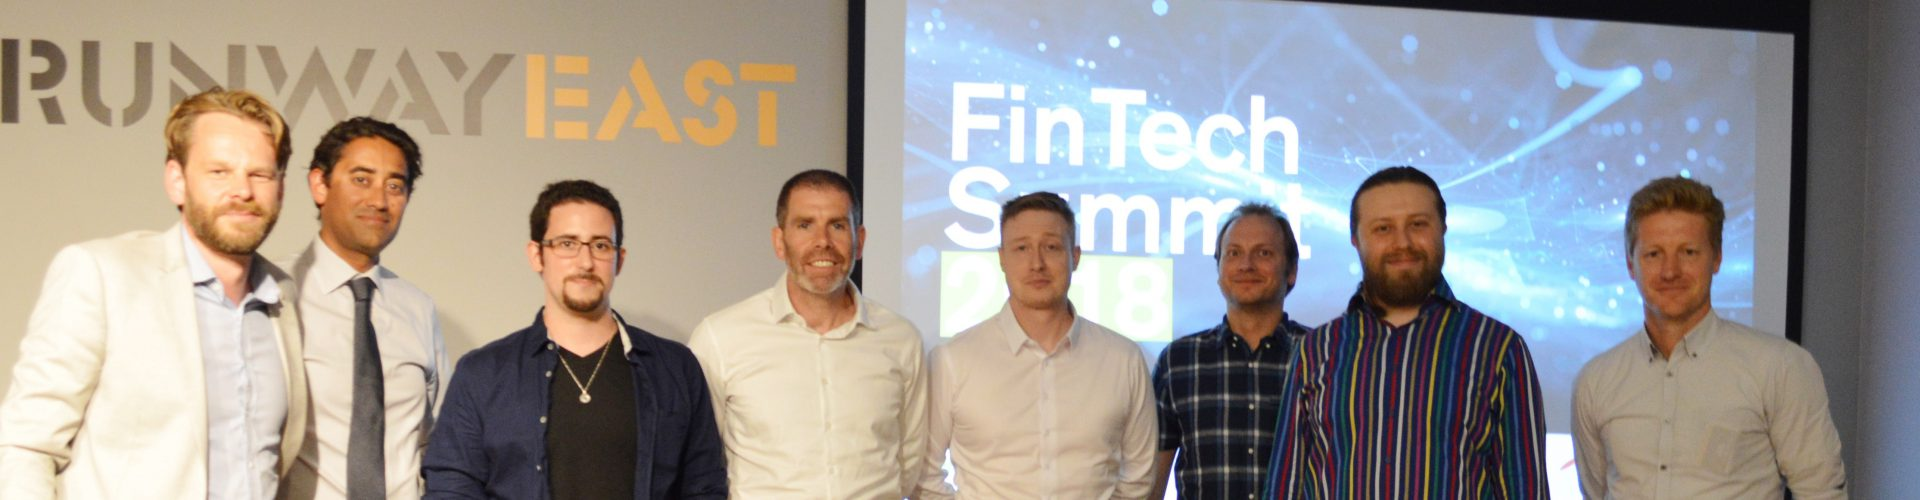 Thought-Leading Fintech Session Predicts Big Changes on User Experience